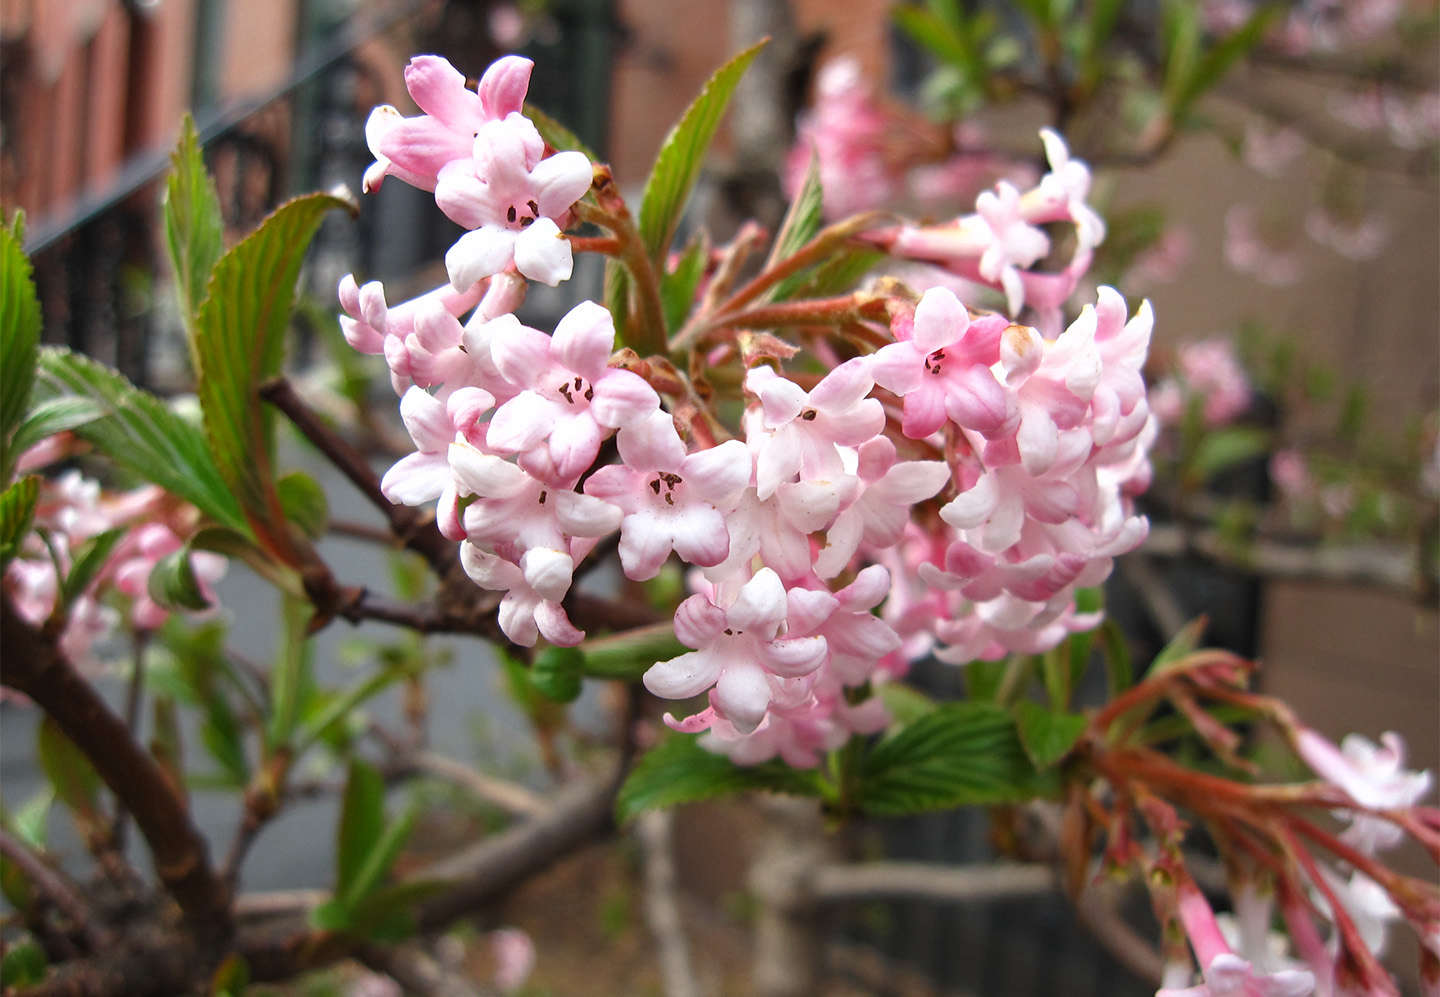 8 cold climate flowering shrubs and small trees for early spring dawn viburnum mightylinksfo Image collections